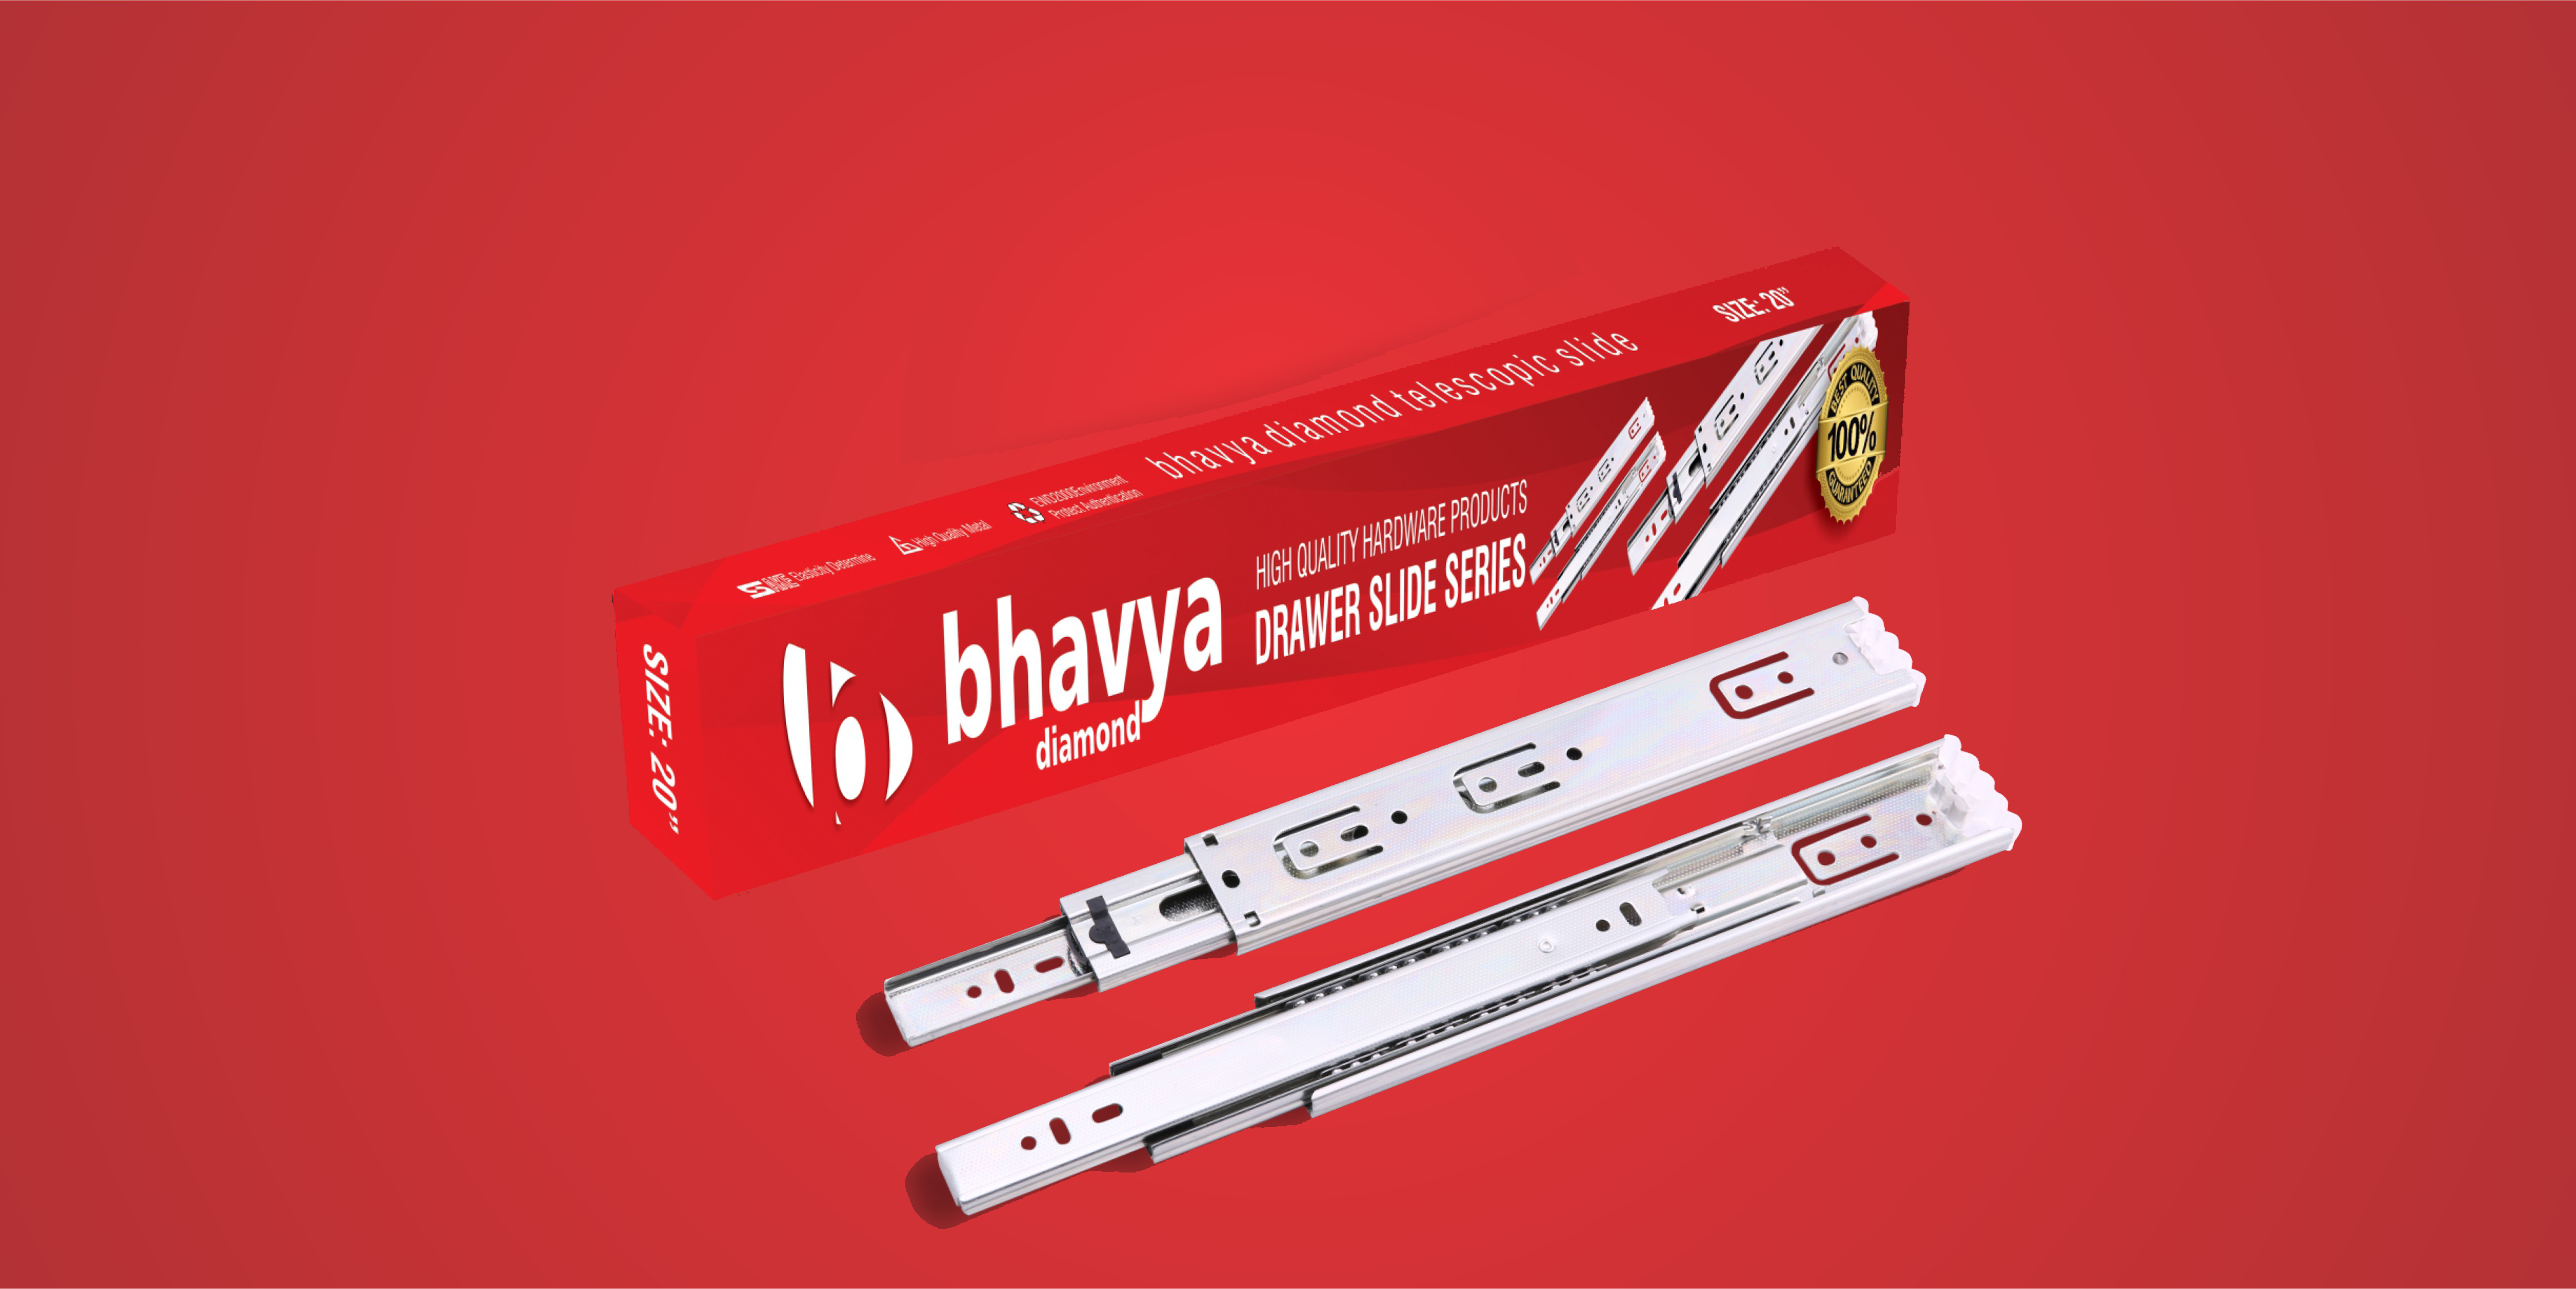 Bhavya Diamond 45mm Telescopic Drawer Slides in Ahmedabad, Gujarat, India, Drawer Slide in India, Drawer Slides in India, Drawer Slides Manufacturers, Suppliers, Wholesale, Dealers, Exporters, Traders in Ahmedabad, Gujarat, India, All type of drawer channels manufacturers in India